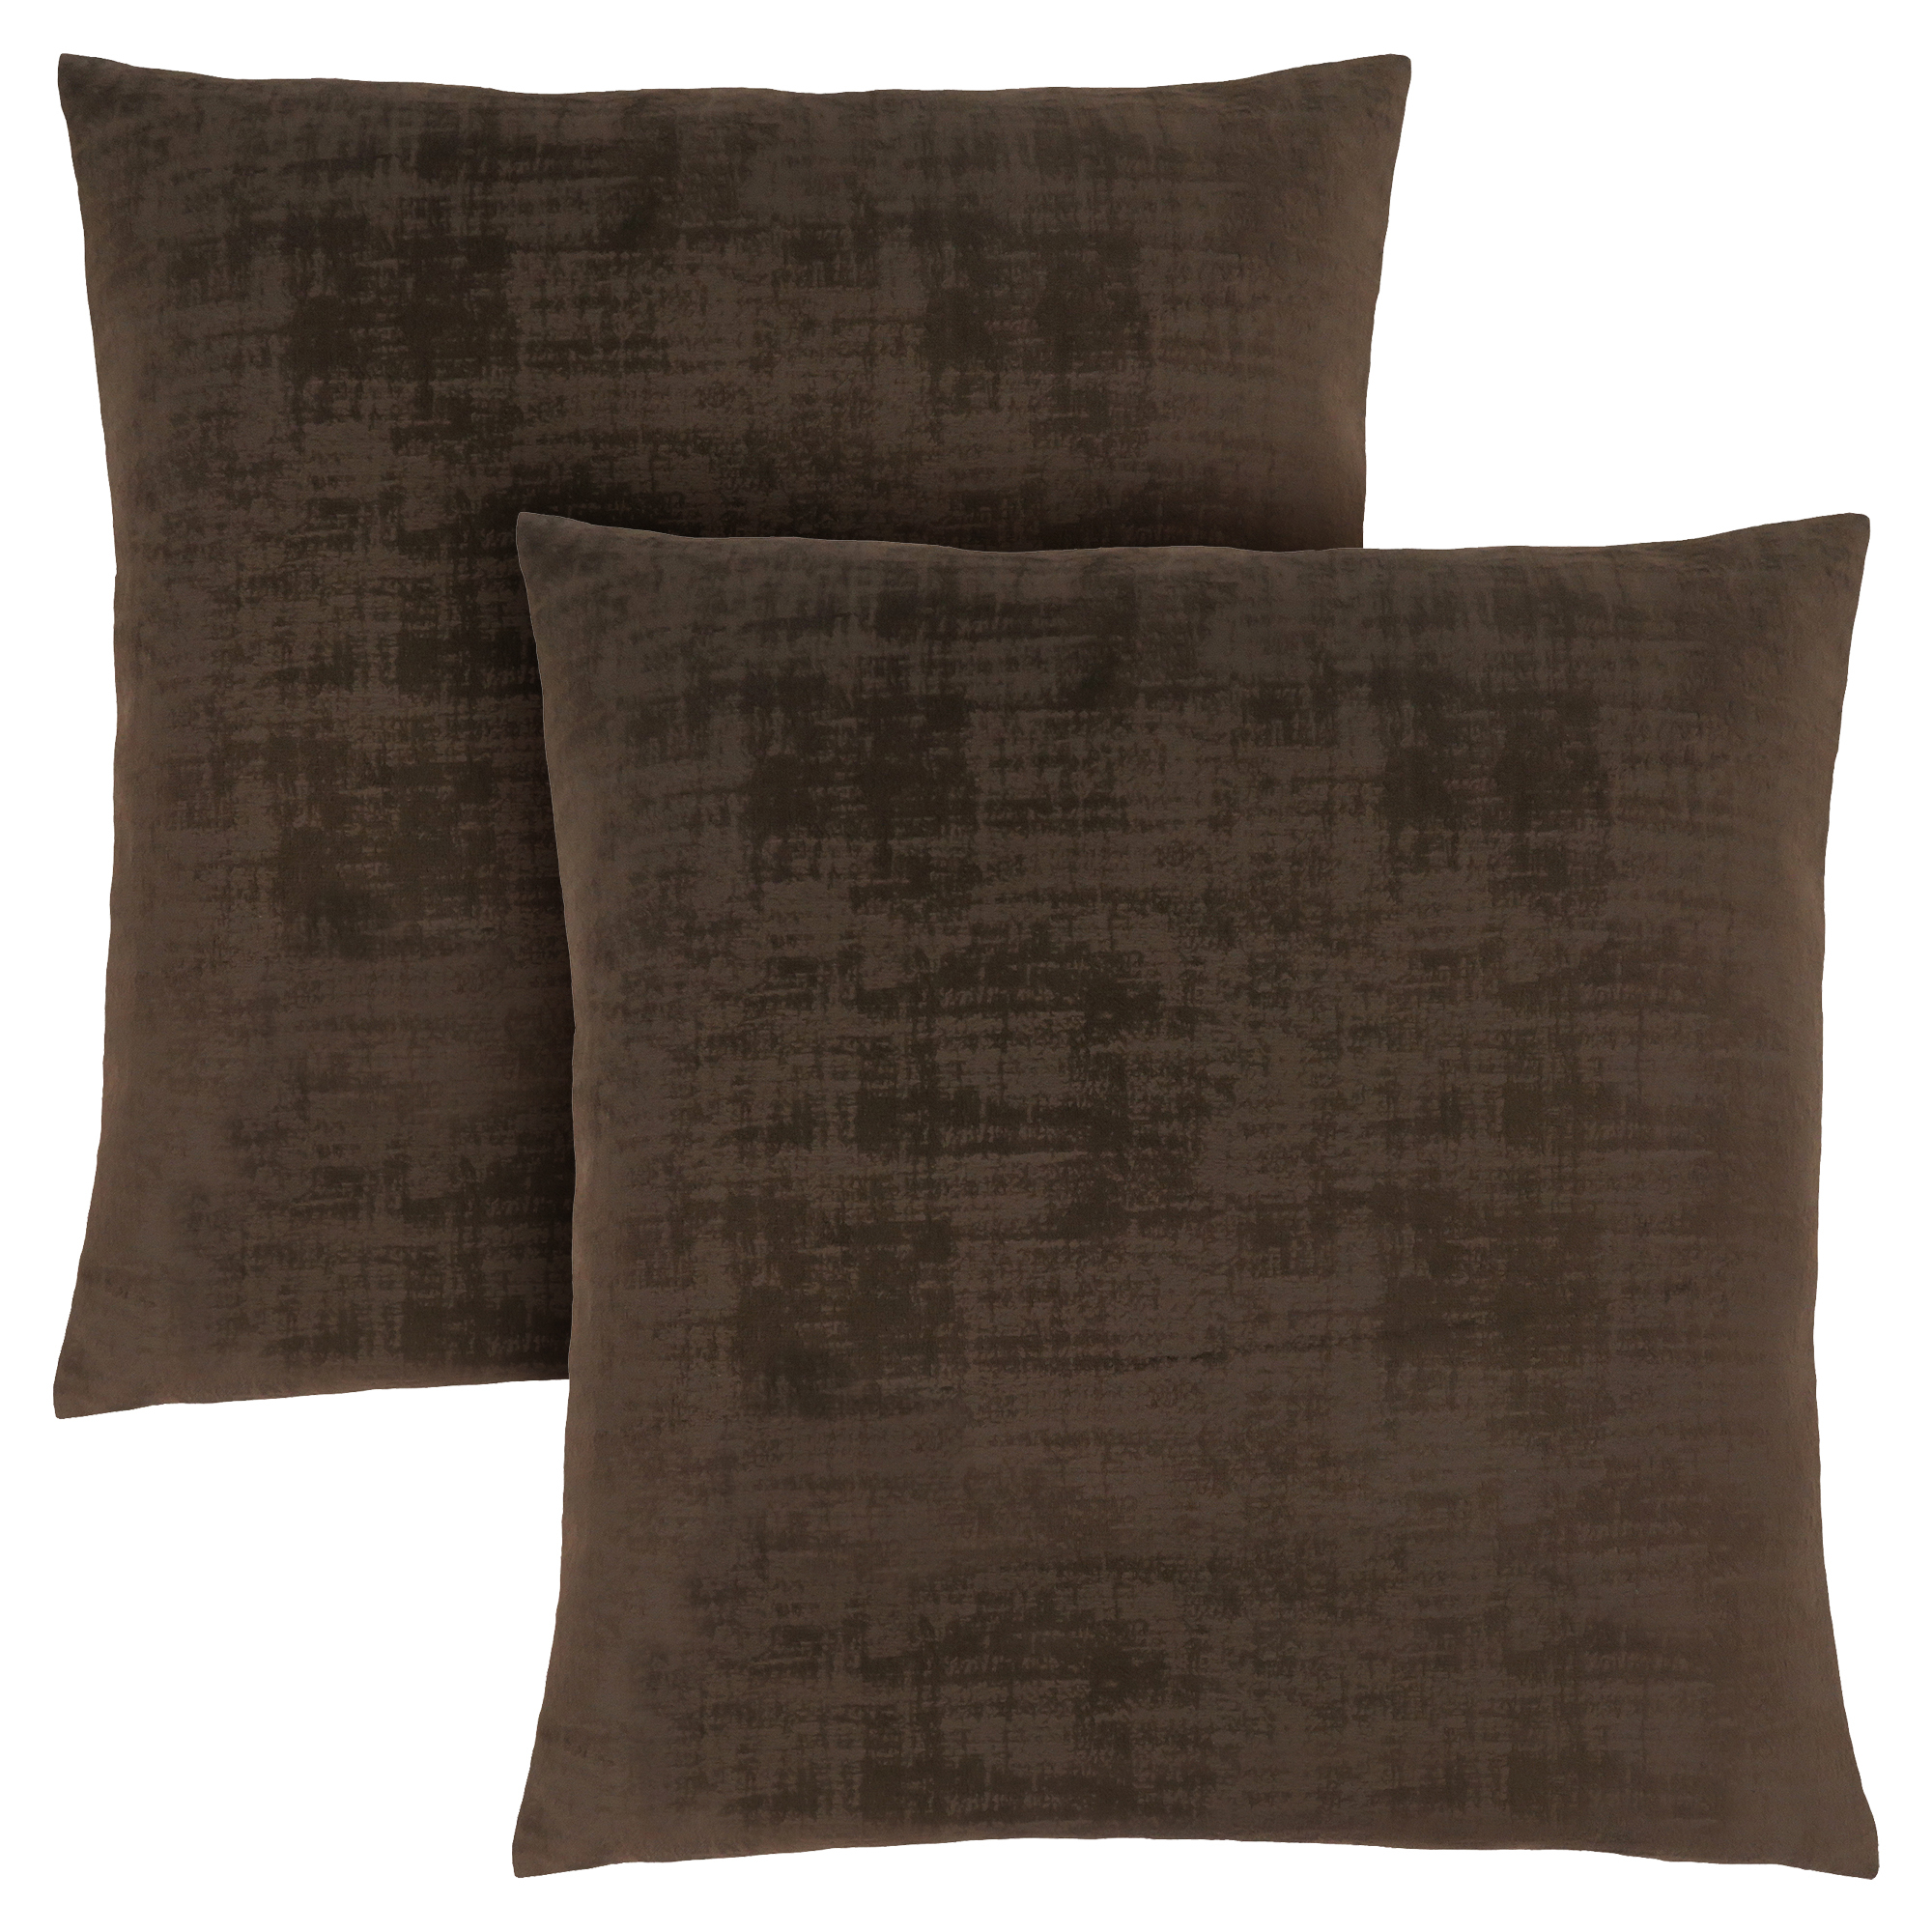 "PILLOW - 18""X 18"" / DARK BROWN BRUSHED VELVET / 2PCS"